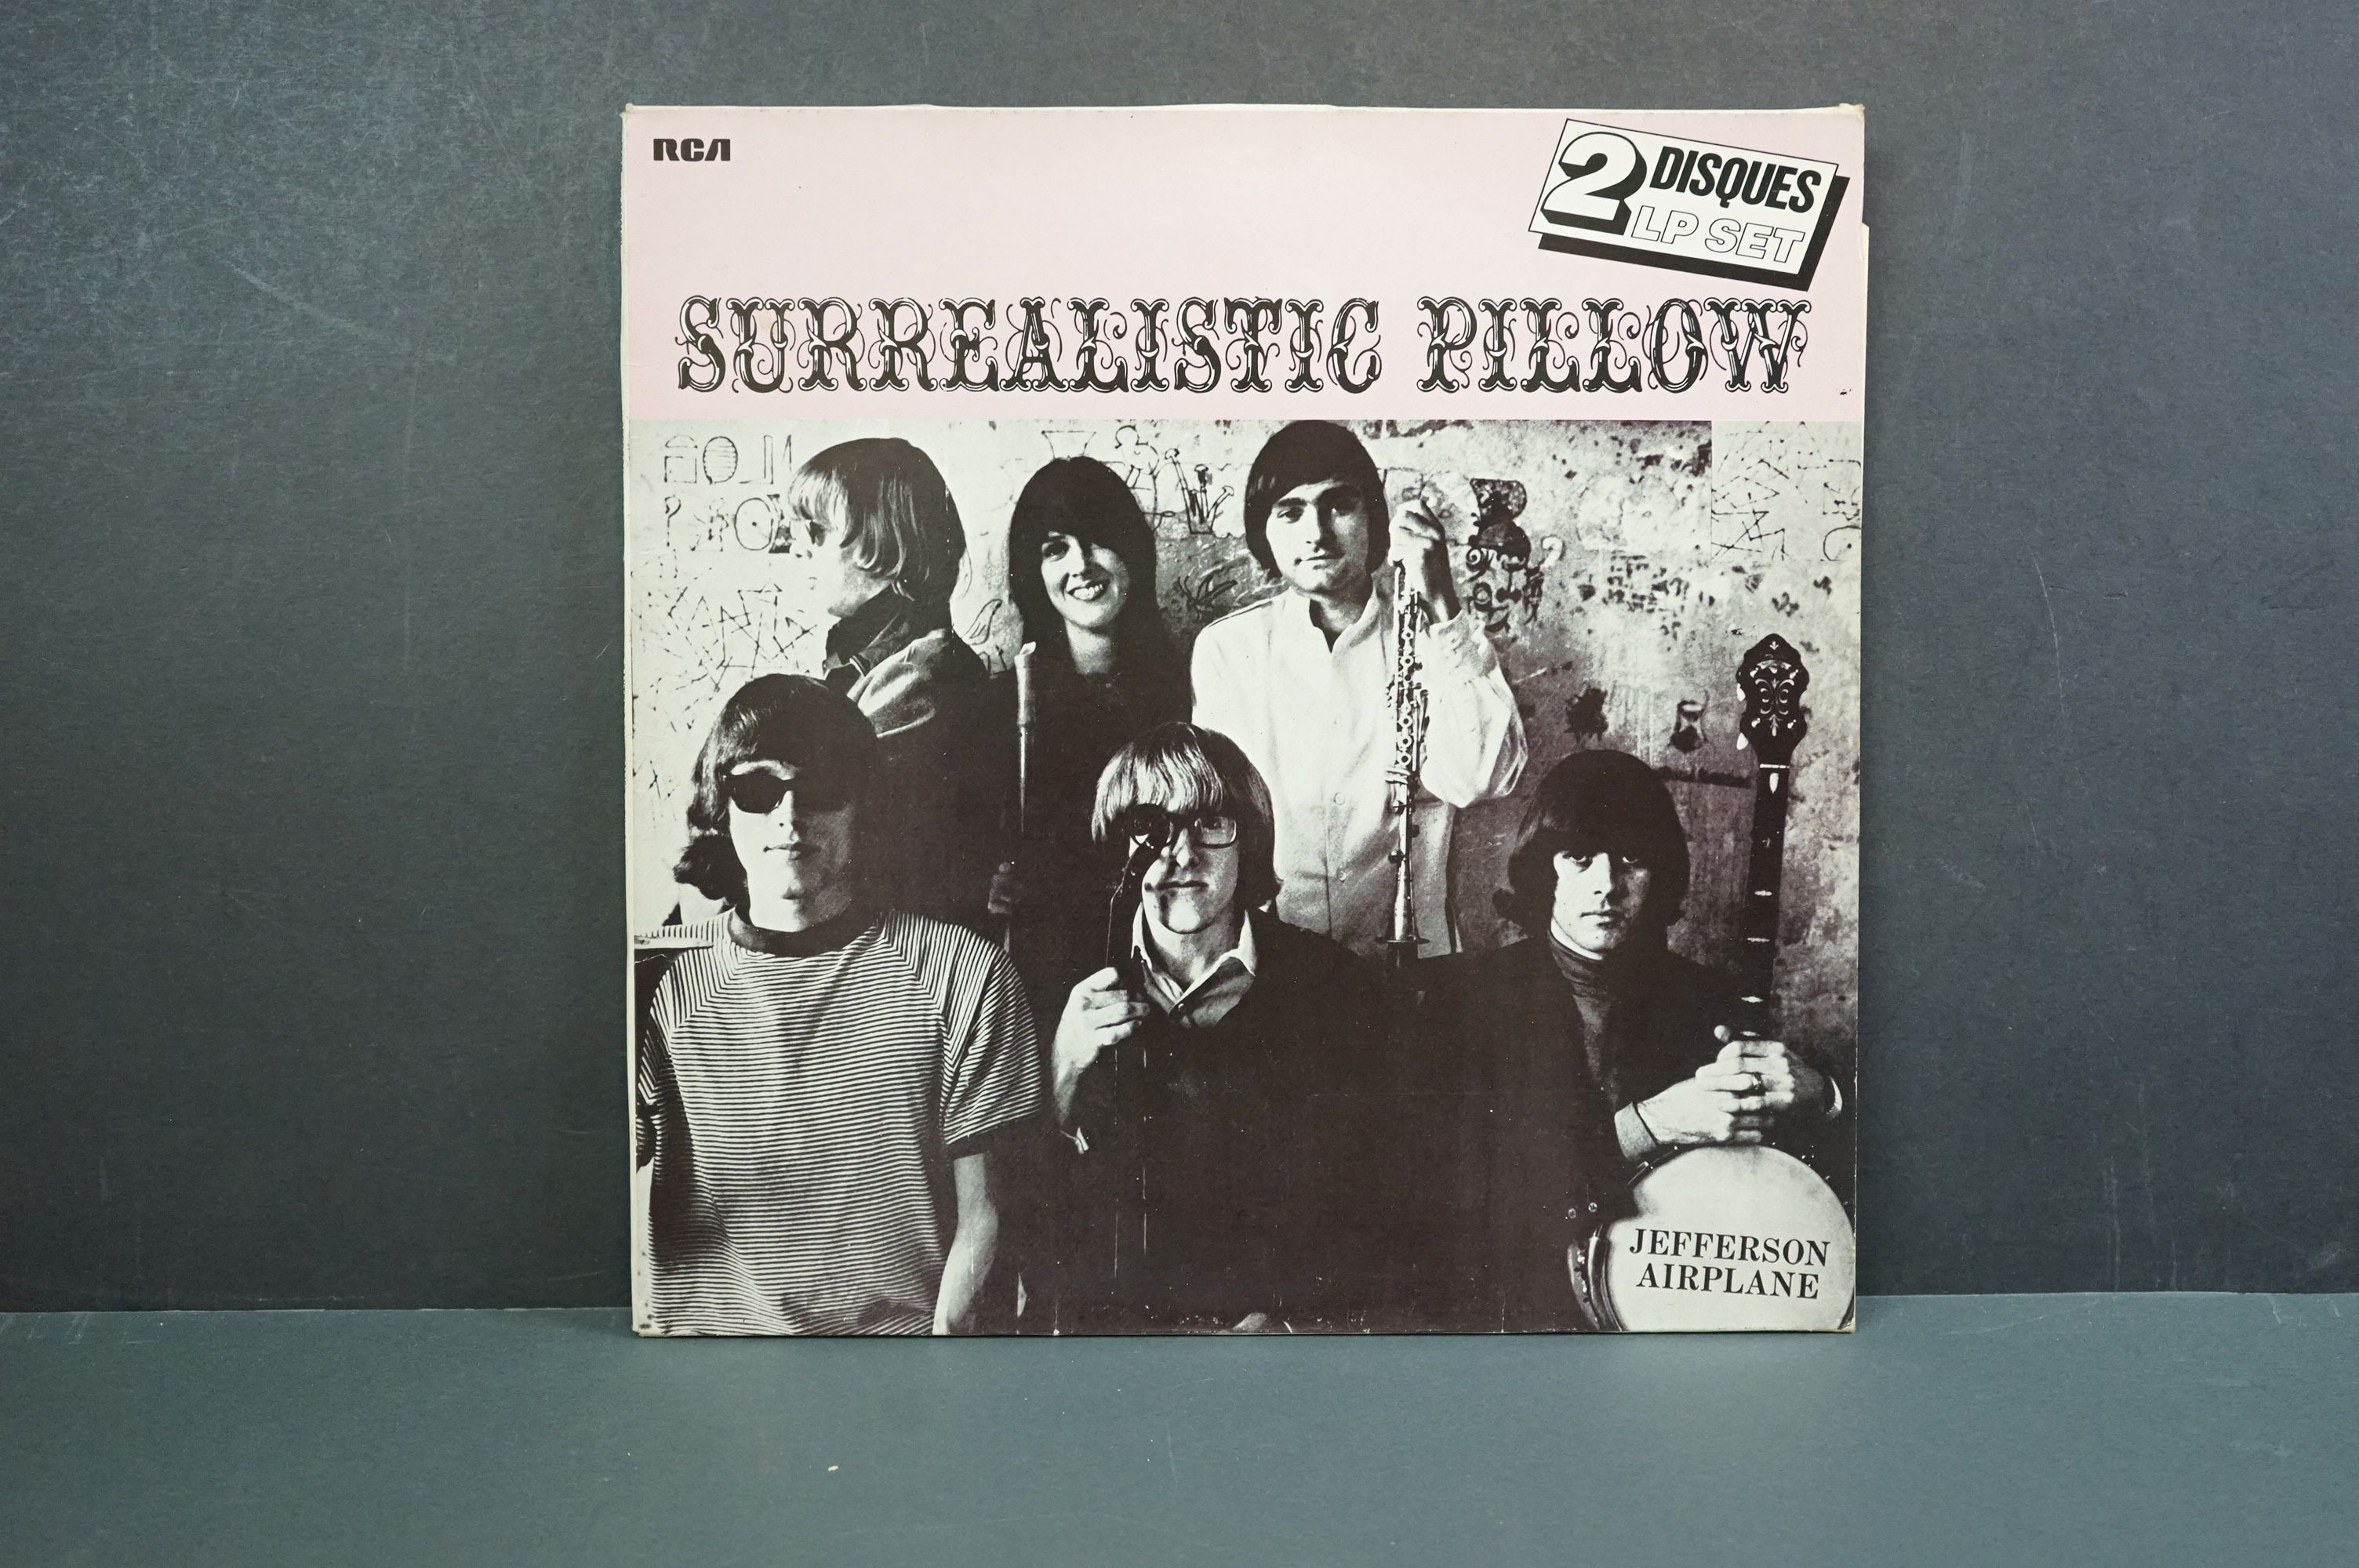 Vinyl - 10 Jefferson Airplane LPs to include Surrealistia Pillow / After Bathing at Baxter's (89301) - Image 14 of 16